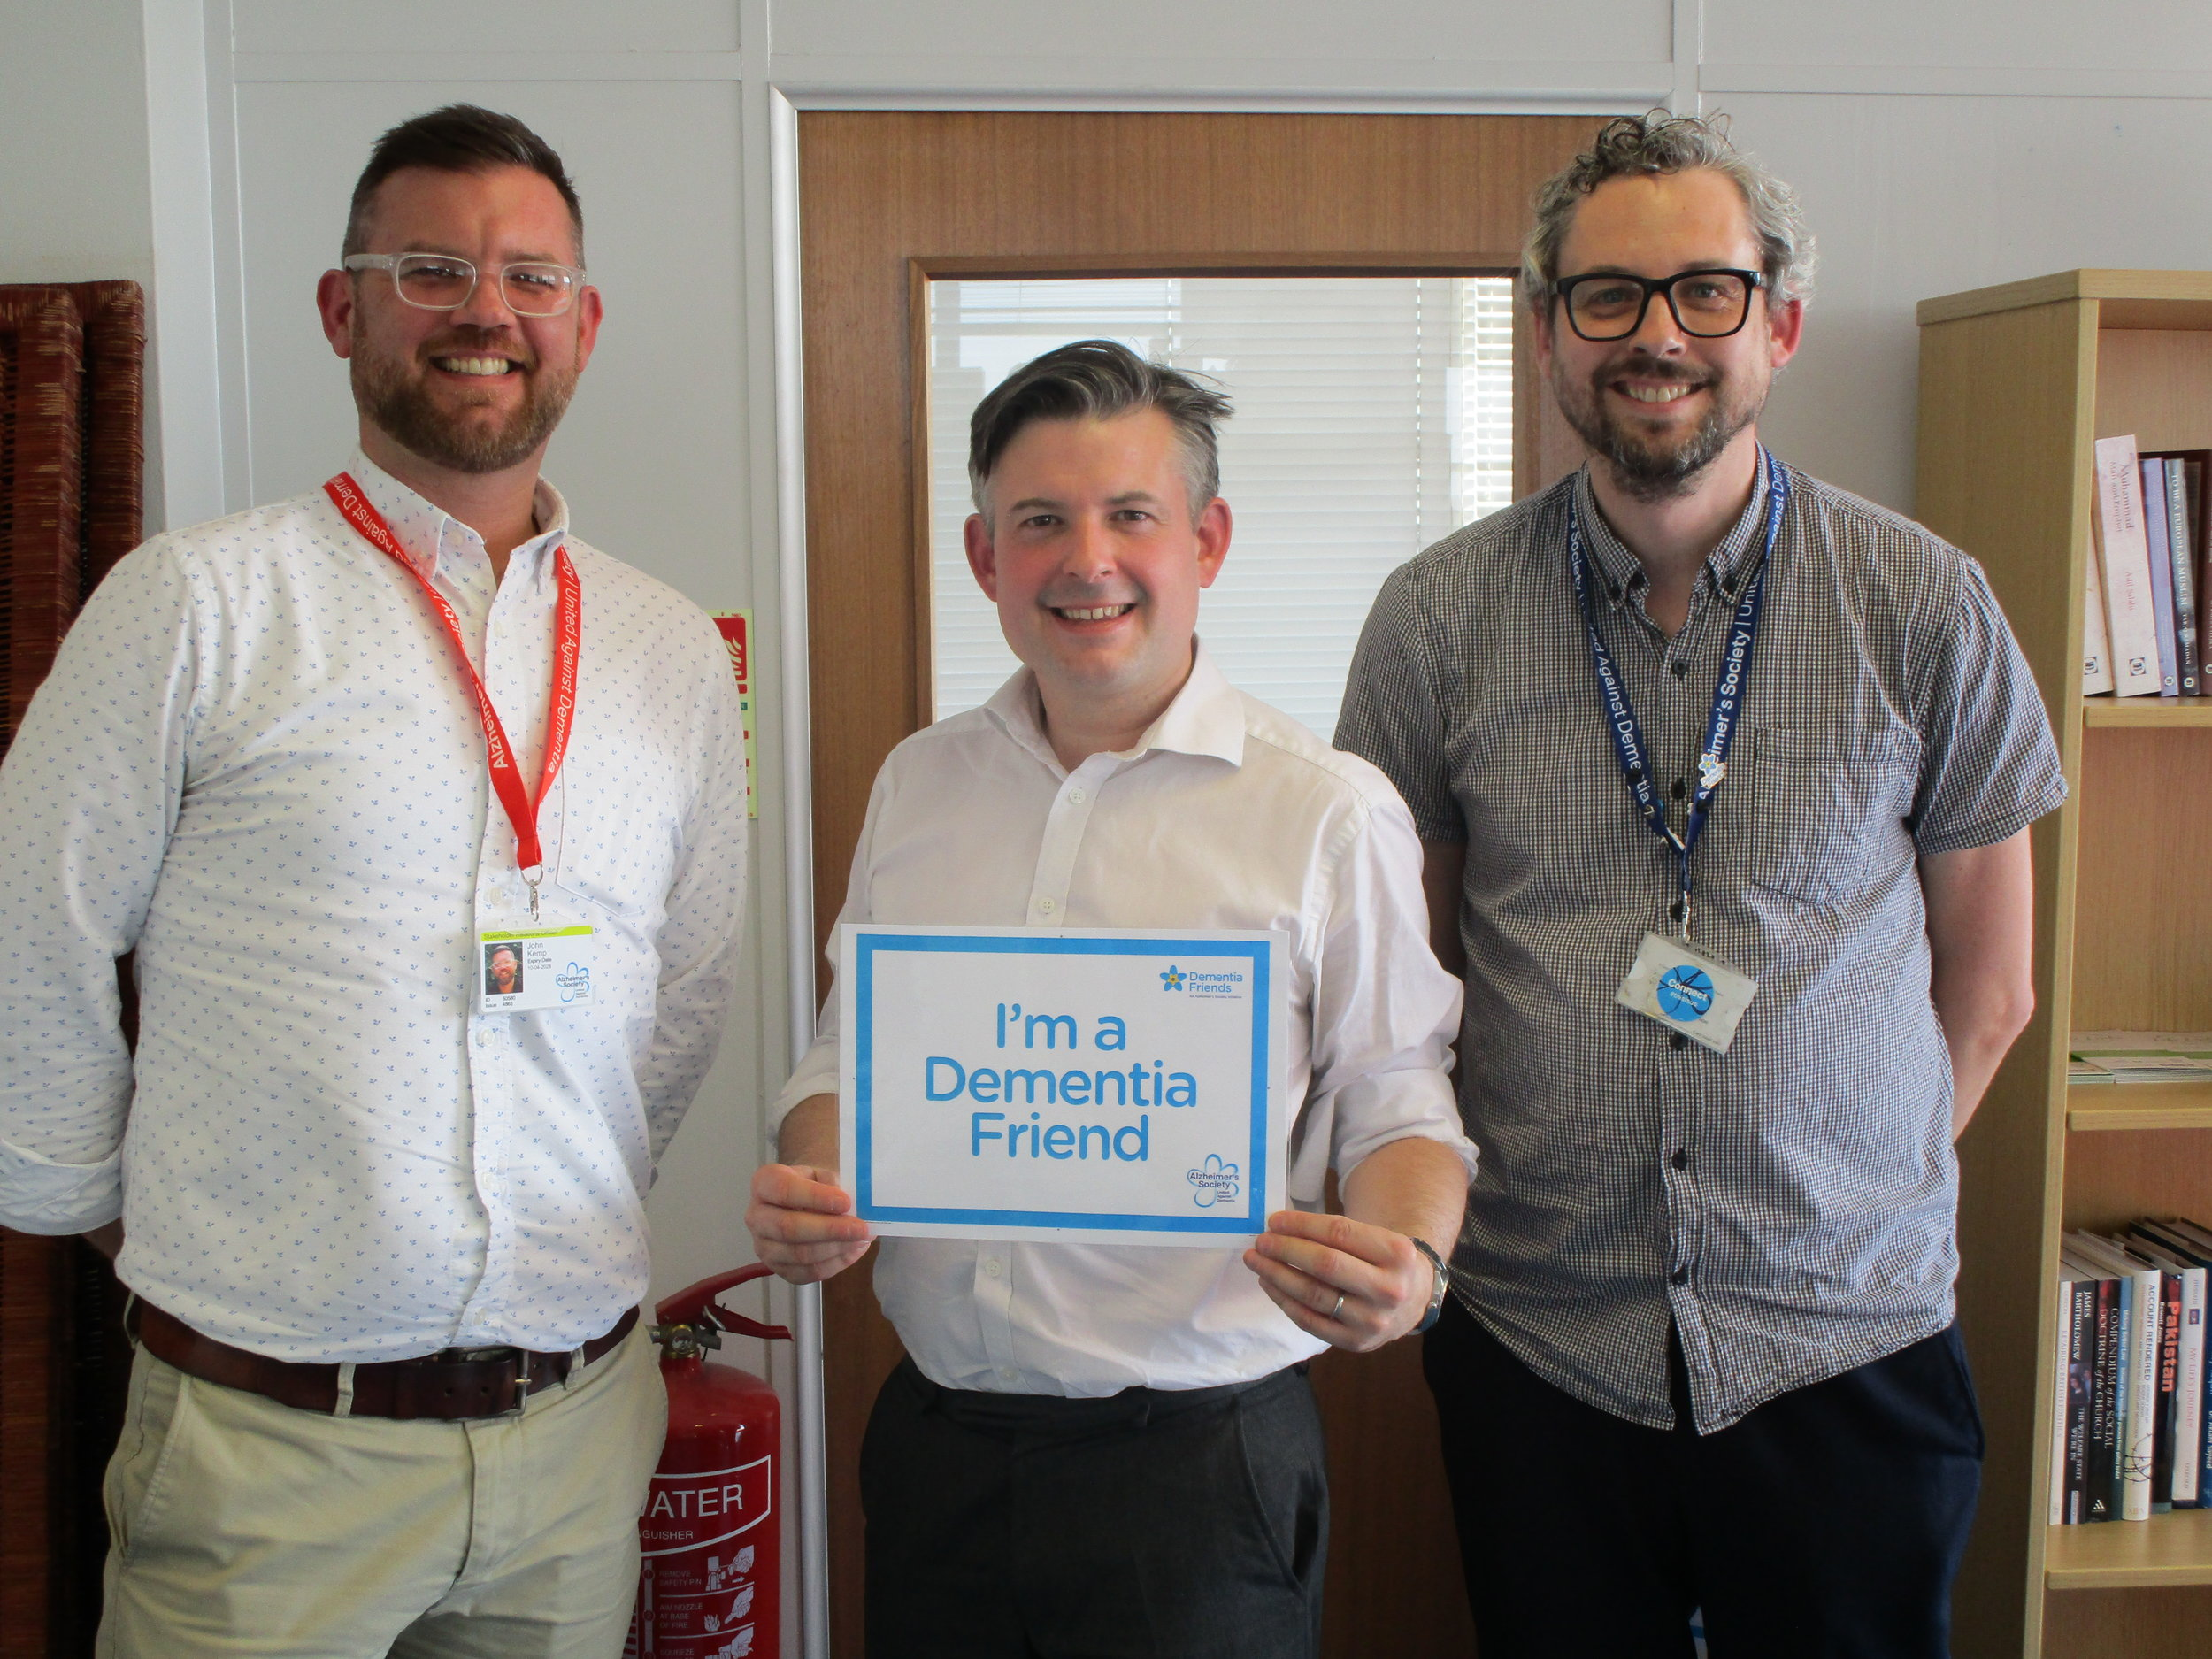 Jonathan Ashworth, Shadow Secretary of State for Health, took part in a Dementia Friends information session organised by Alzheimer's Society - Friday April 20 2018